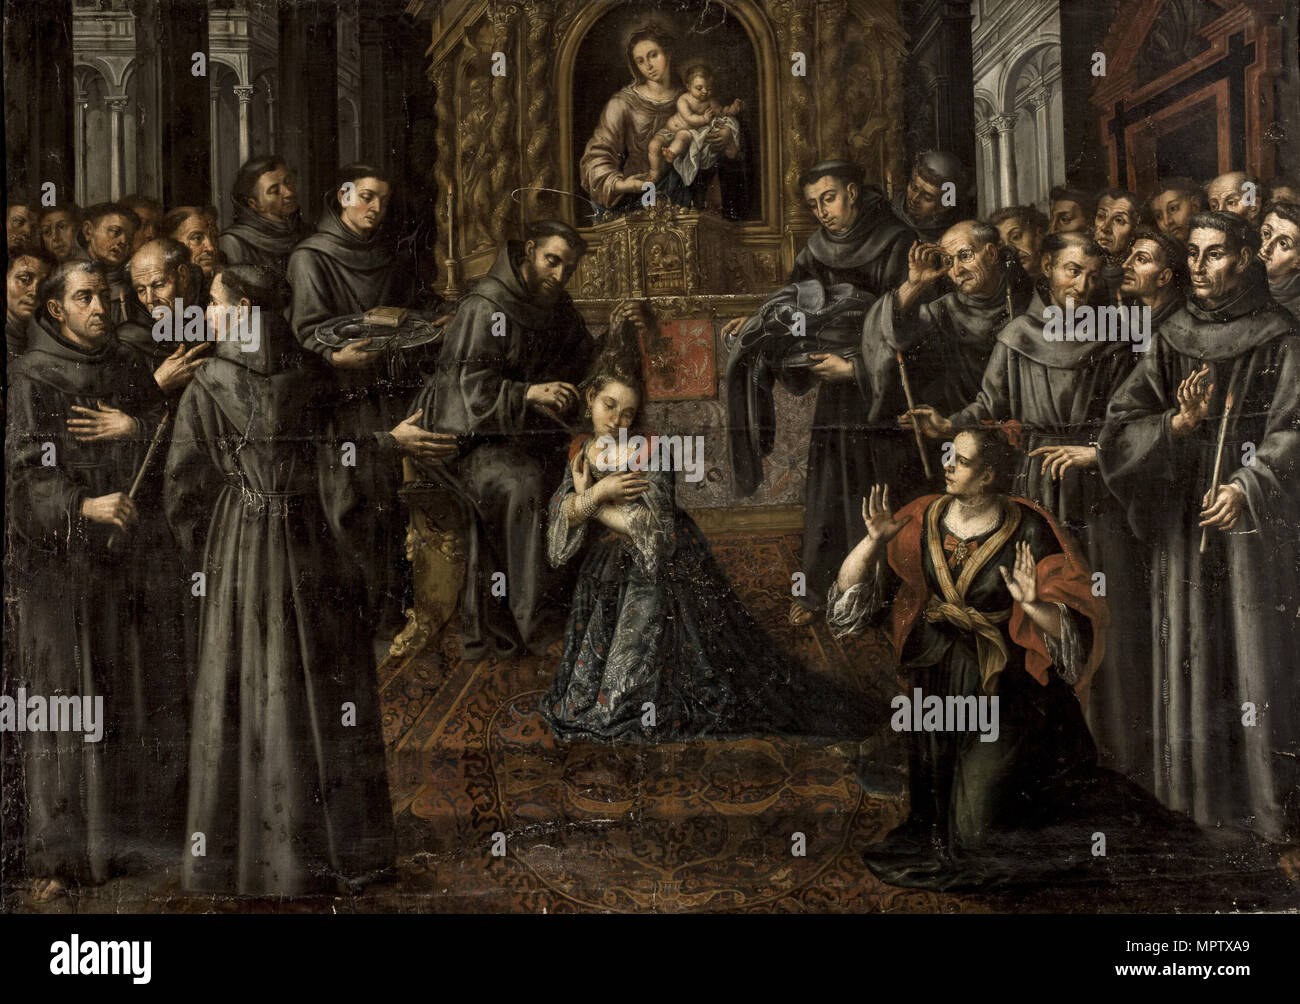 The profession of Saint Clare. - Stock Image